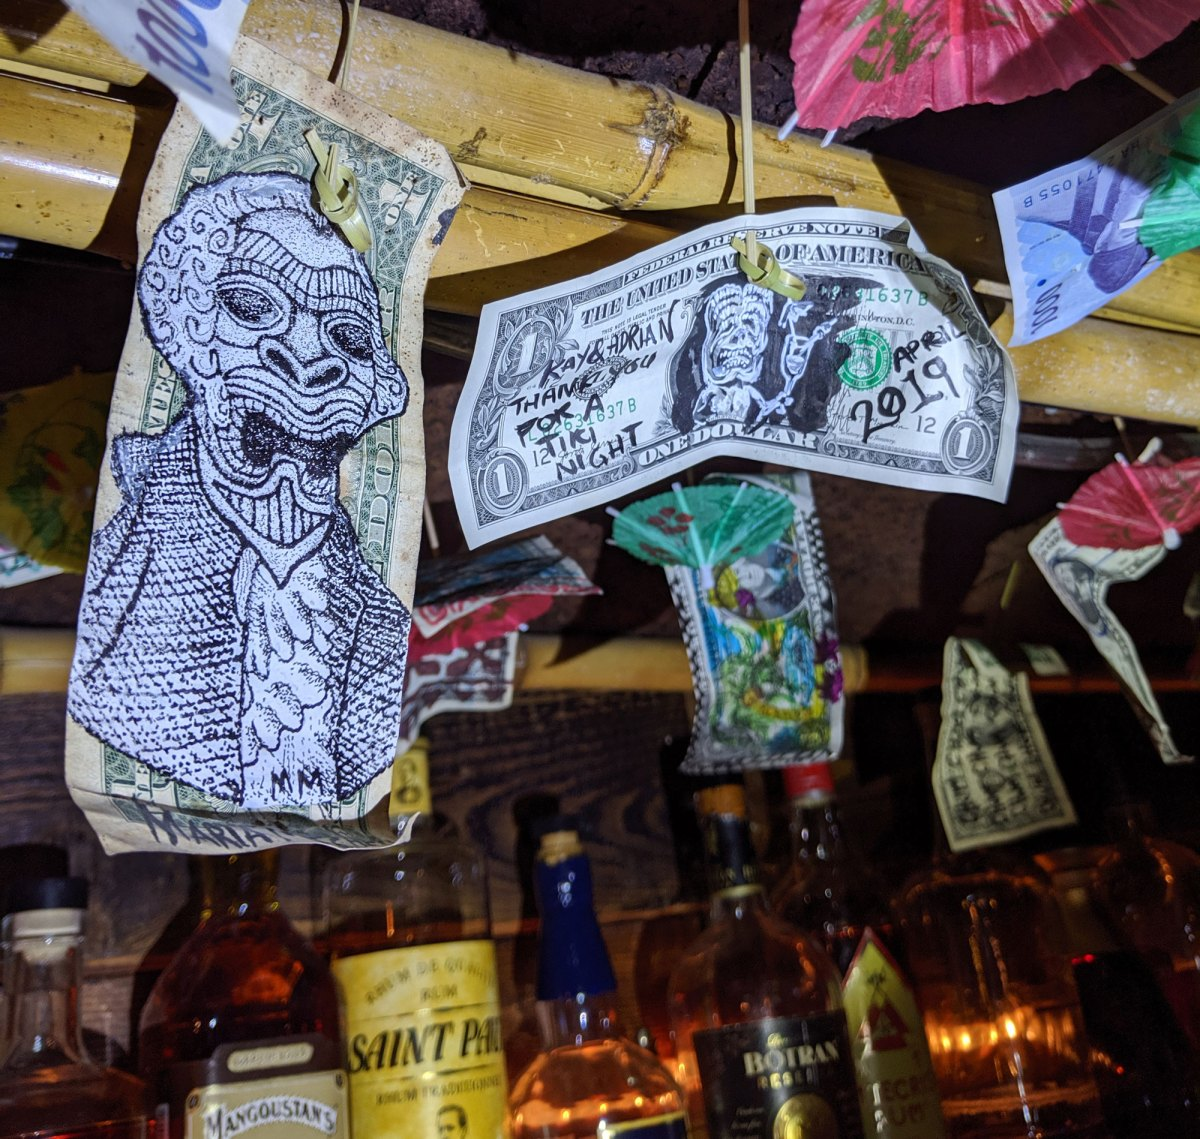 Tiki bar pulls thousands of dollars from ceiling and walls, donates it